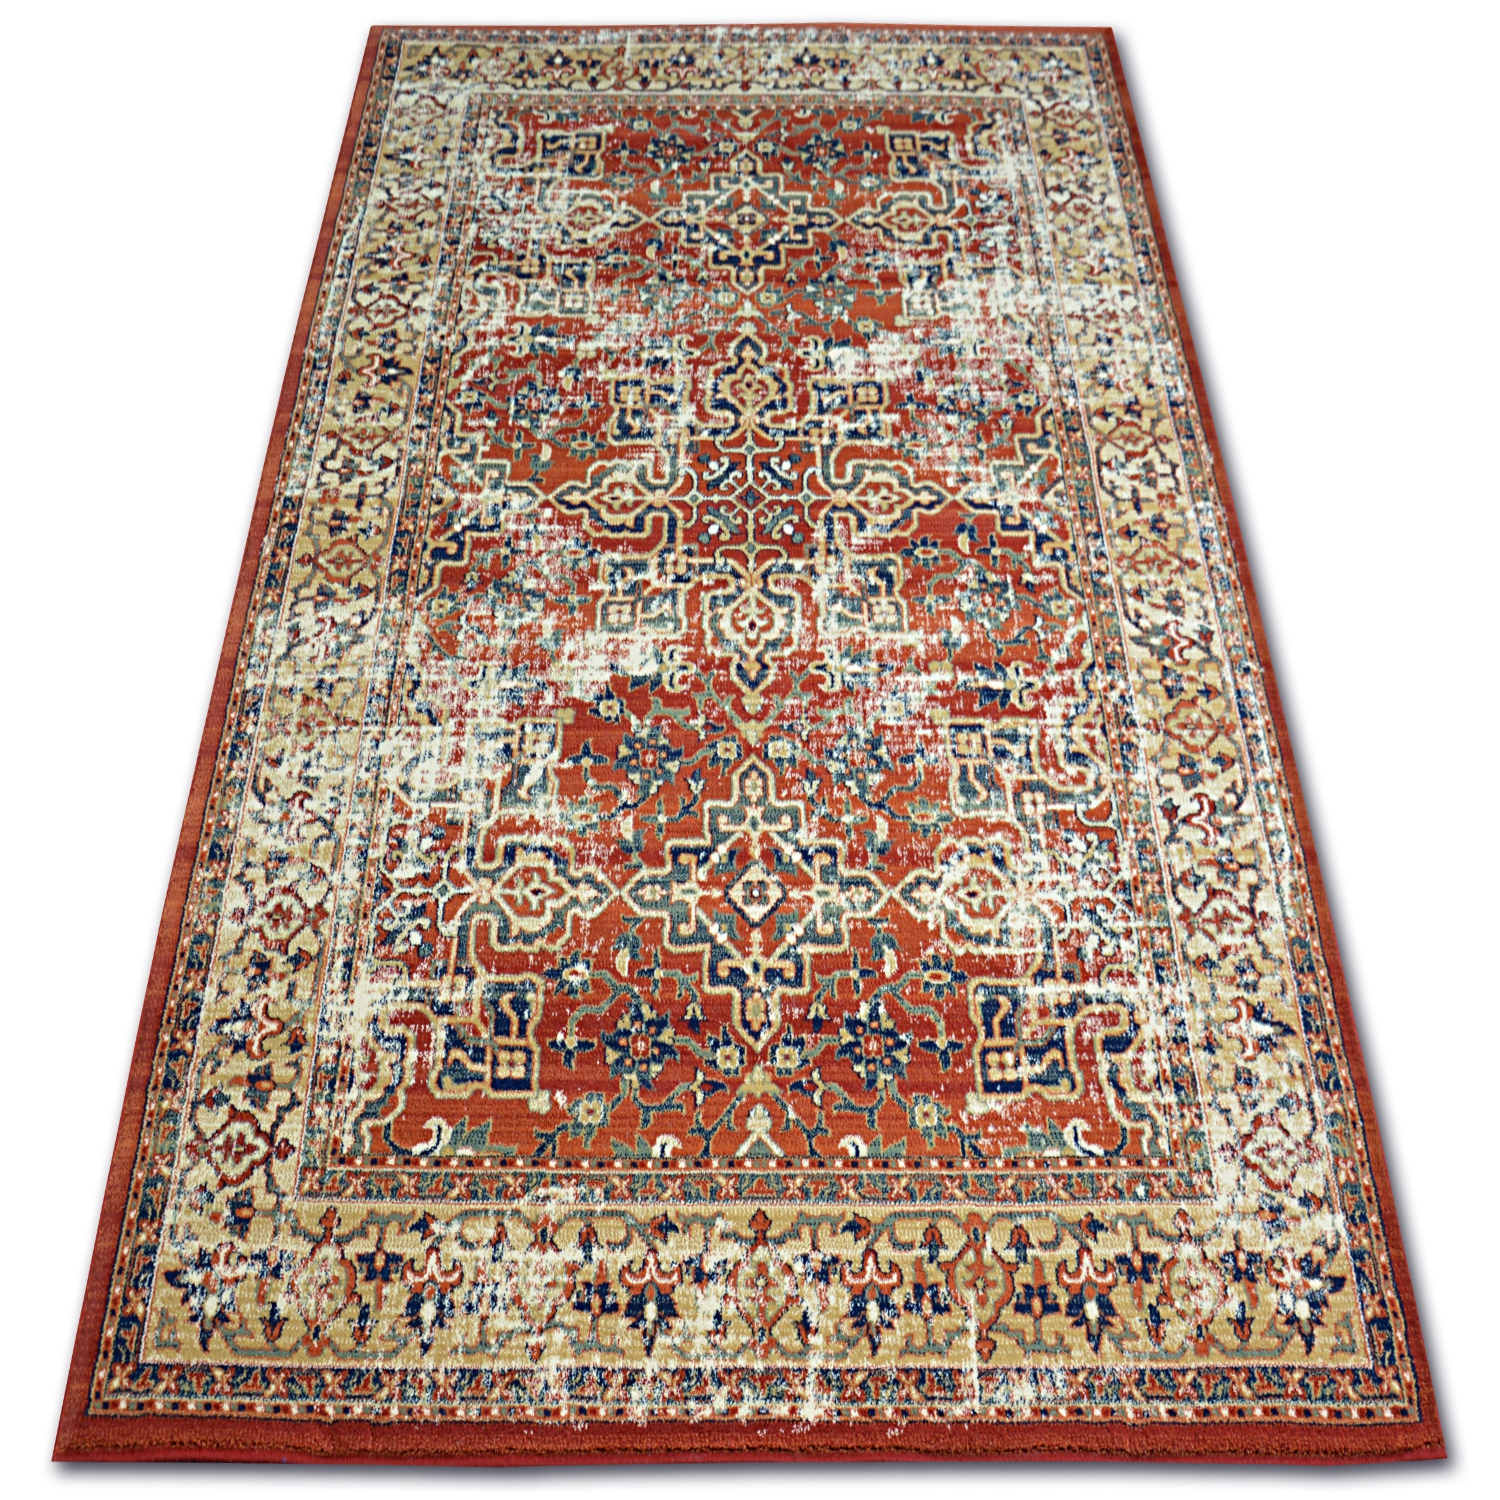 Details About Thick And Densely Woven Wool Rugs Vera Flowers Terracotta Traditional Carpets